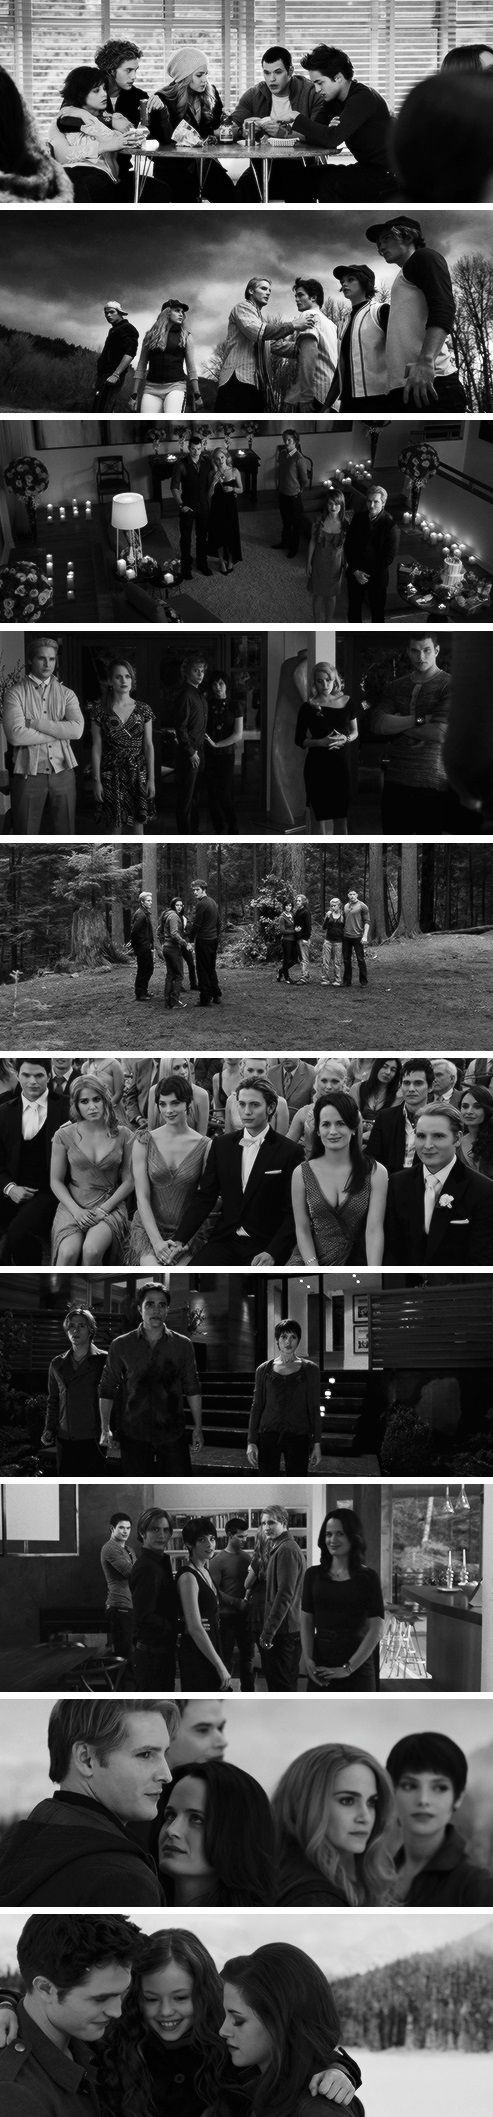 Twilight Saga - Twilight - New Moon - Eclipse - Breaking Dawn - Cullen Family